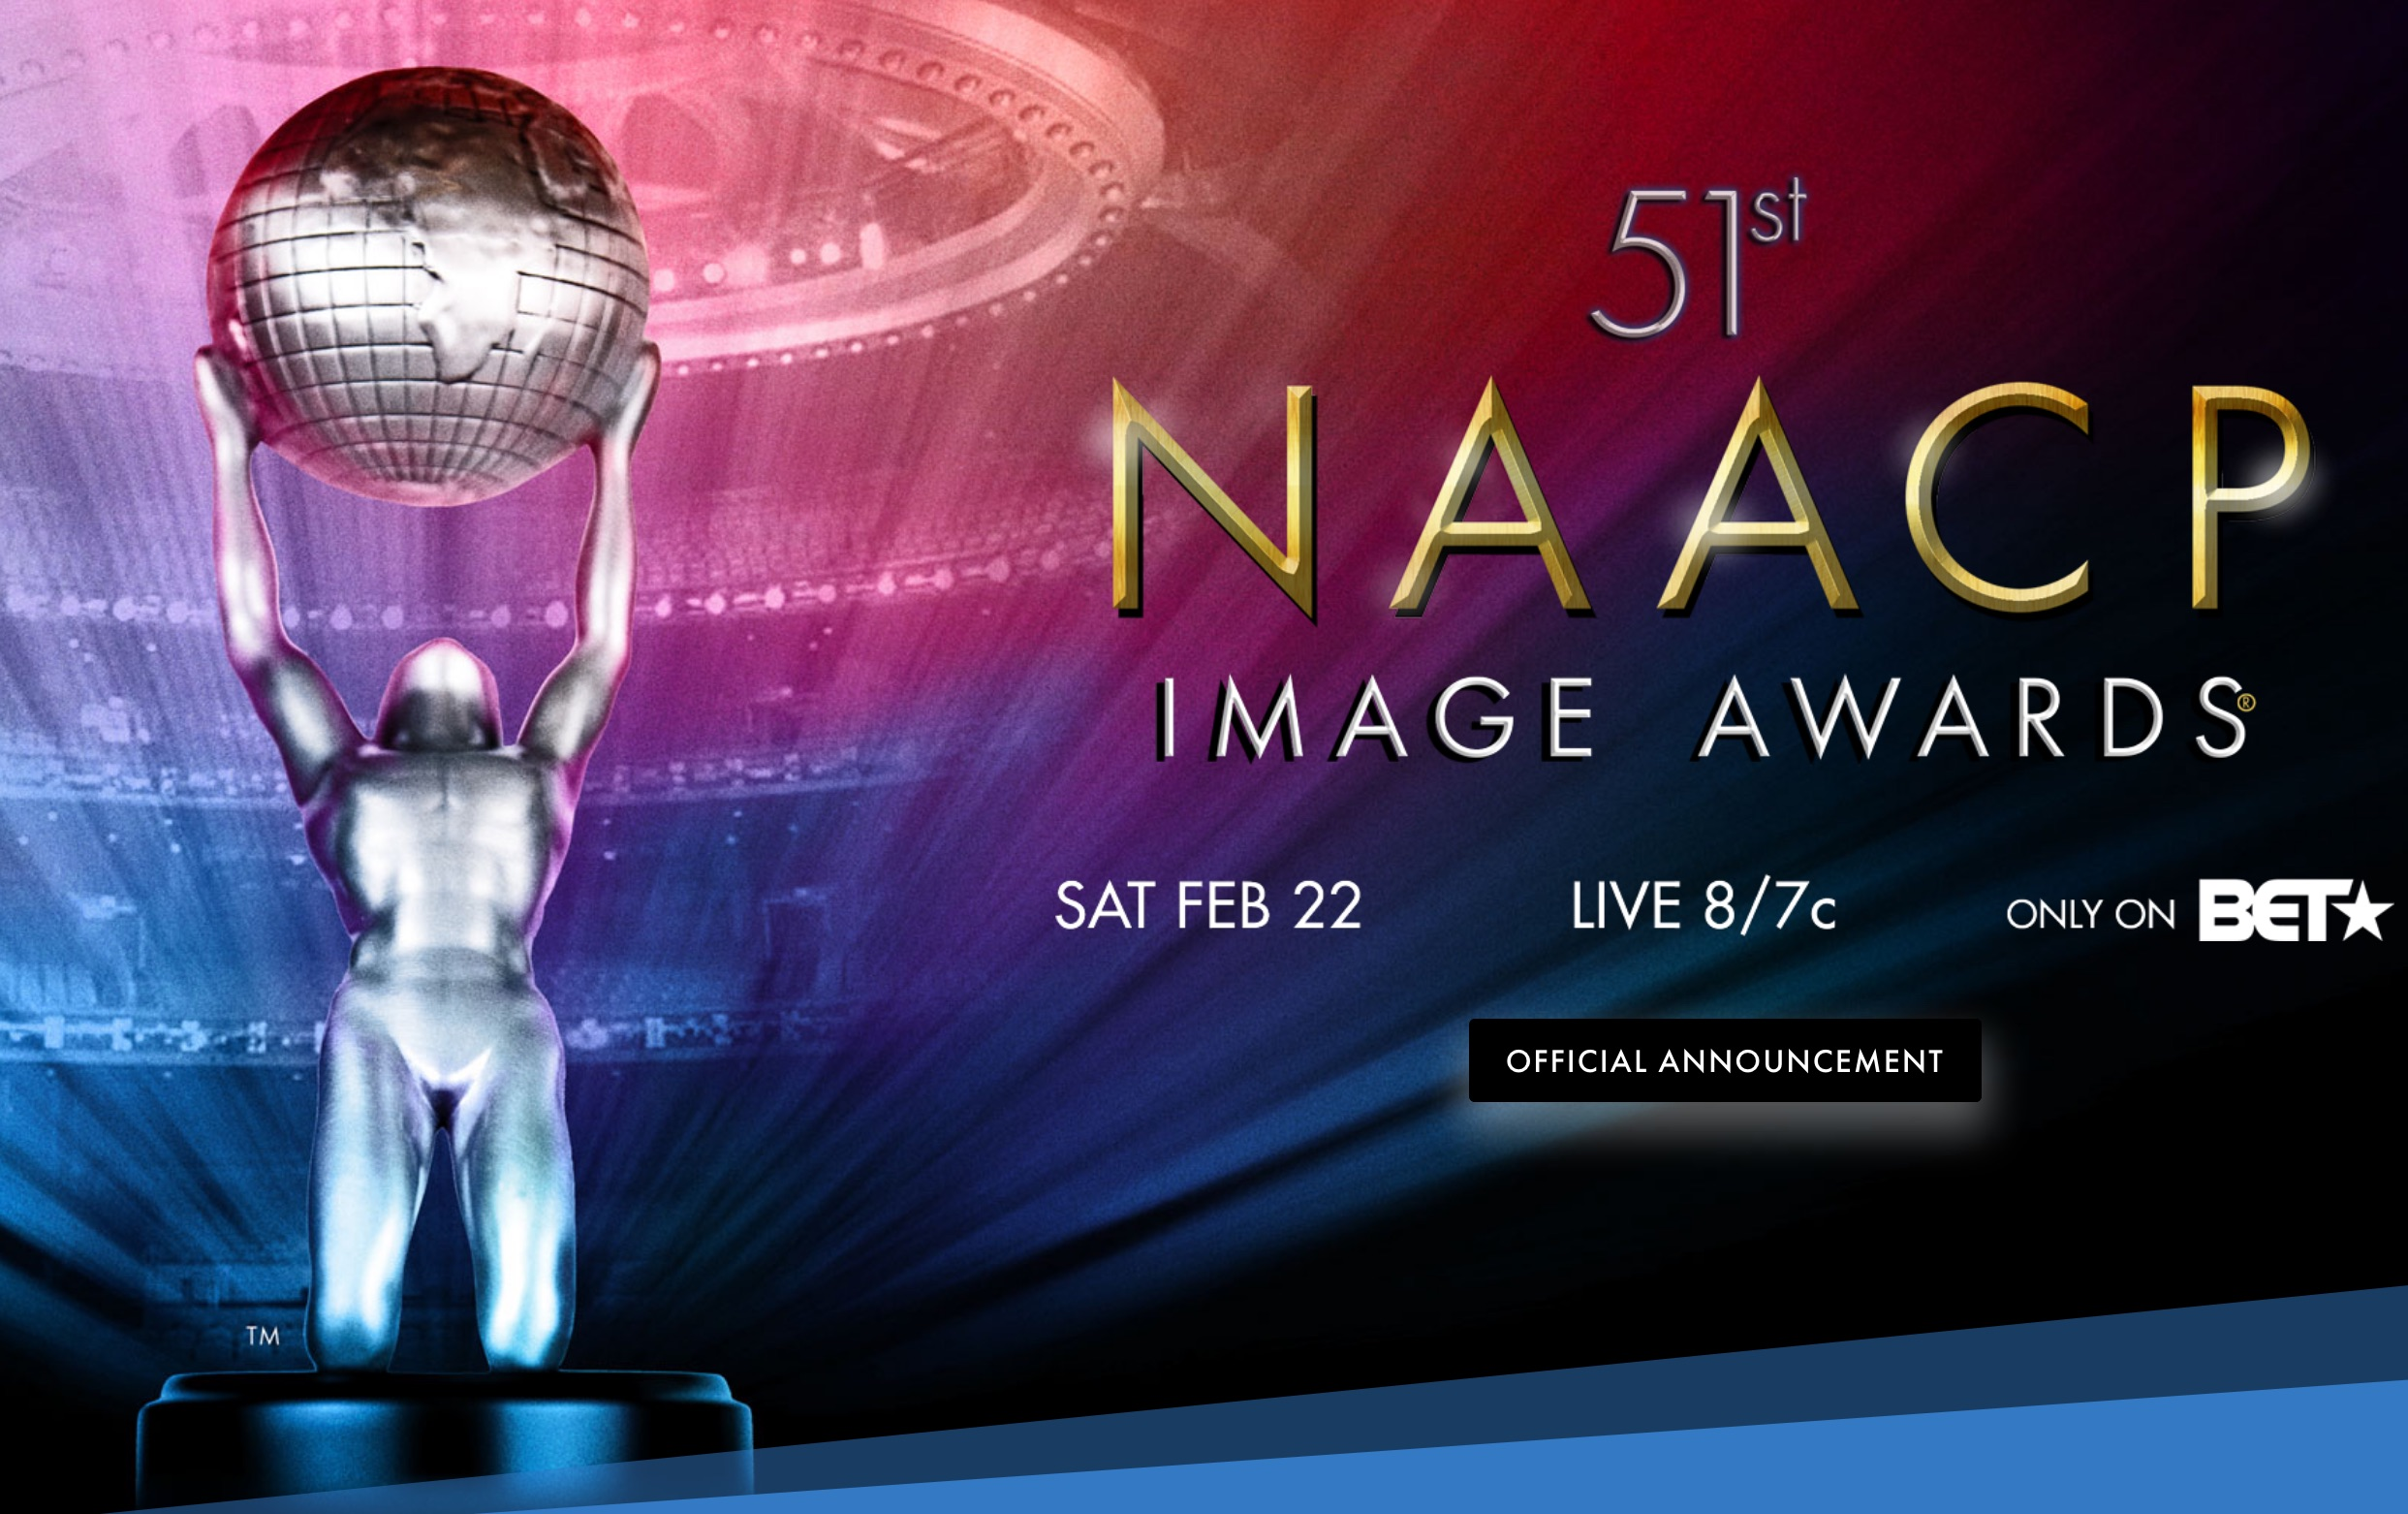 NAACP Image Awards to Air Live on BET Networks